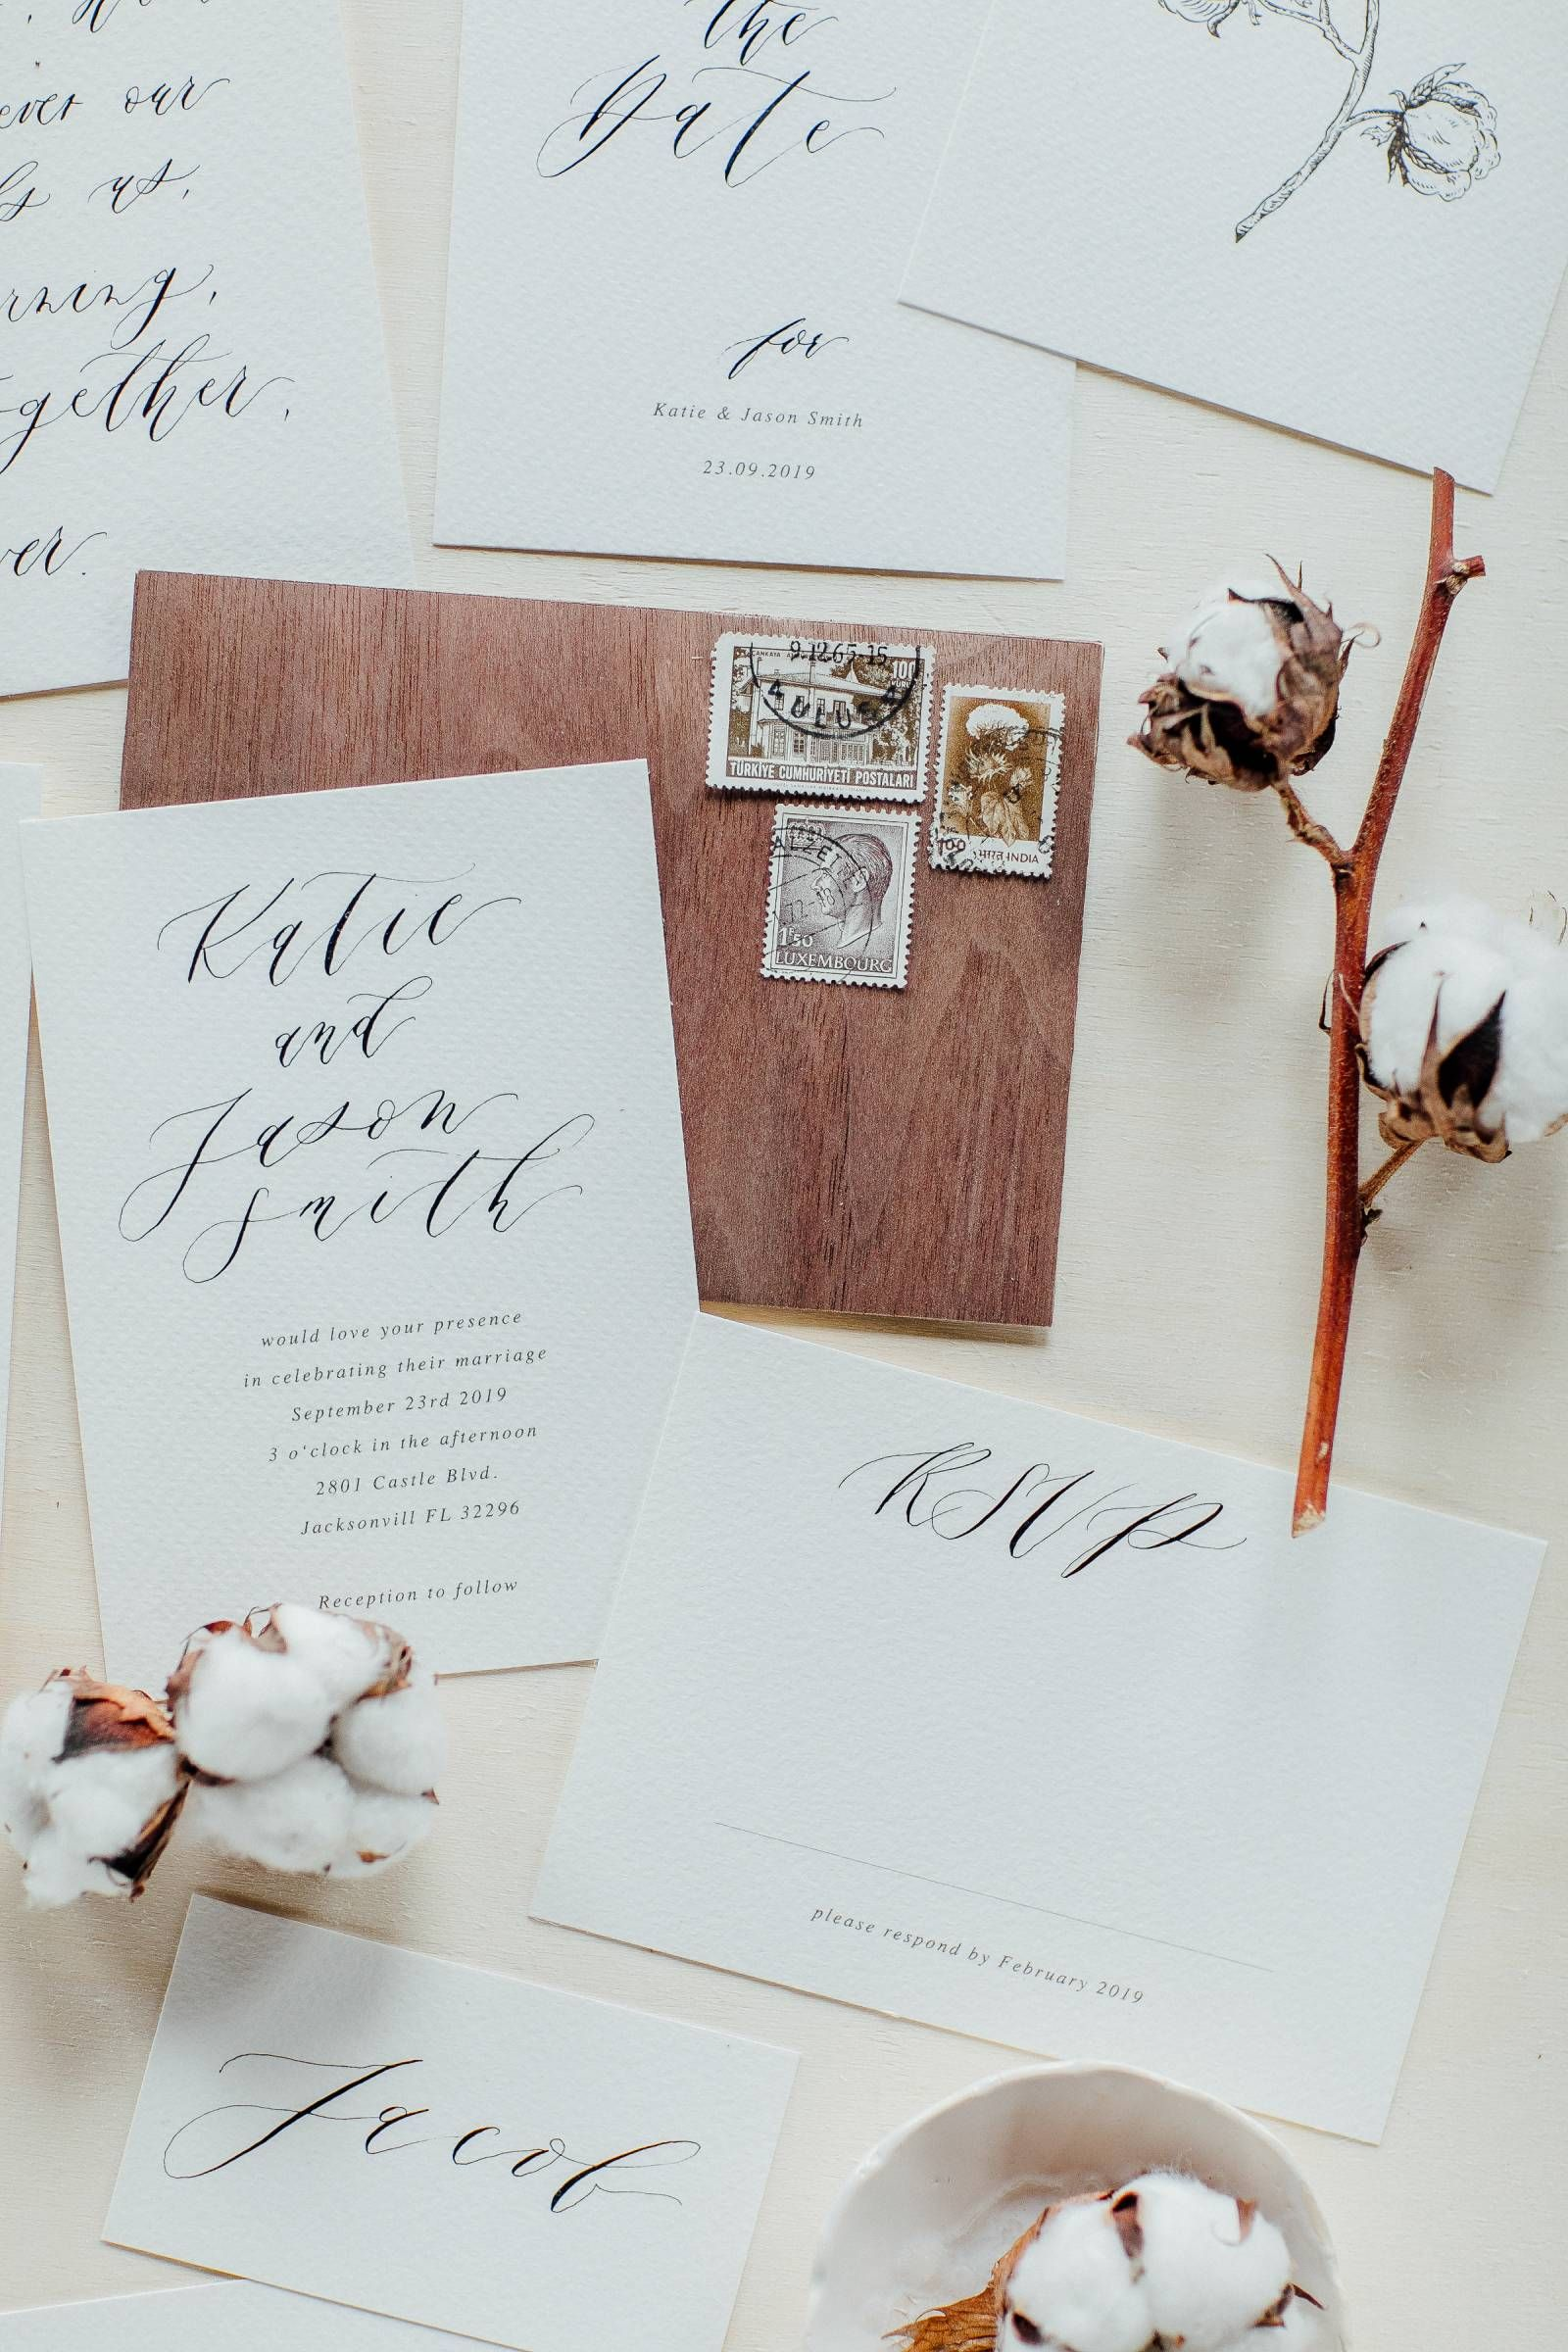 Outside fall wedding decorations february 2019 Elegant handcalligraphed stationery suite using handmade cotton